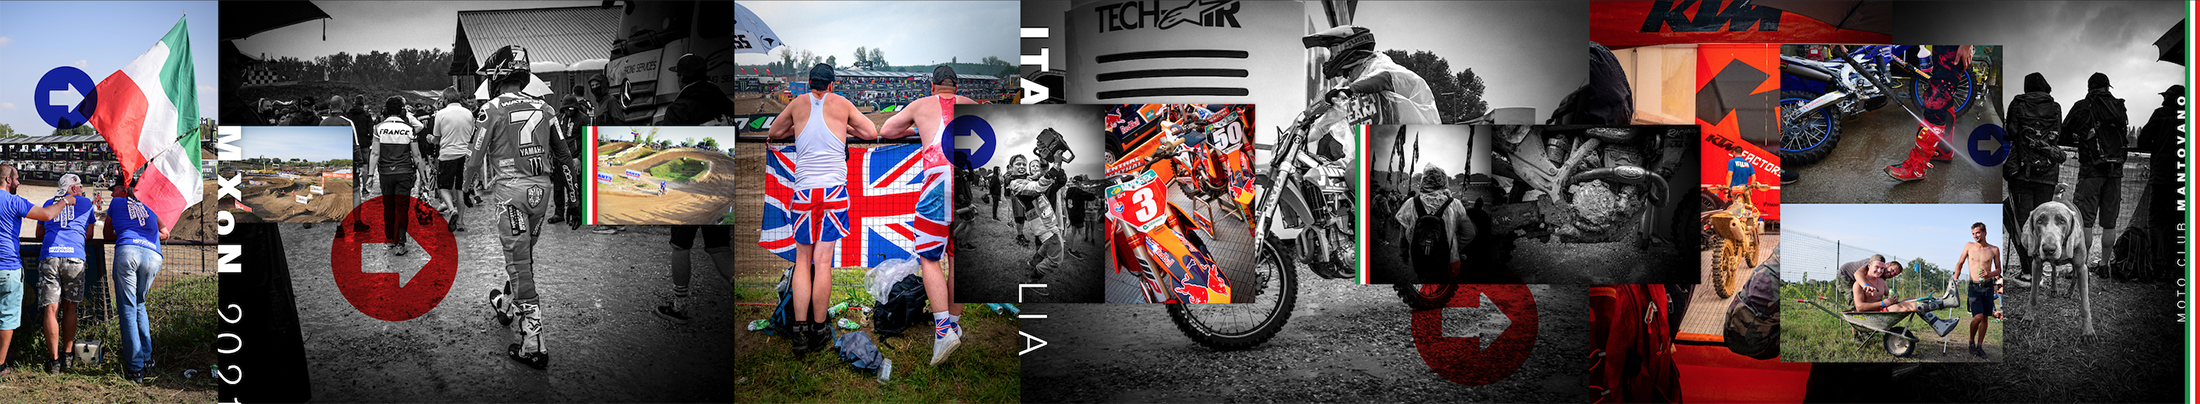 Photo Samples from MXoN 2021 from Jarred Elrod